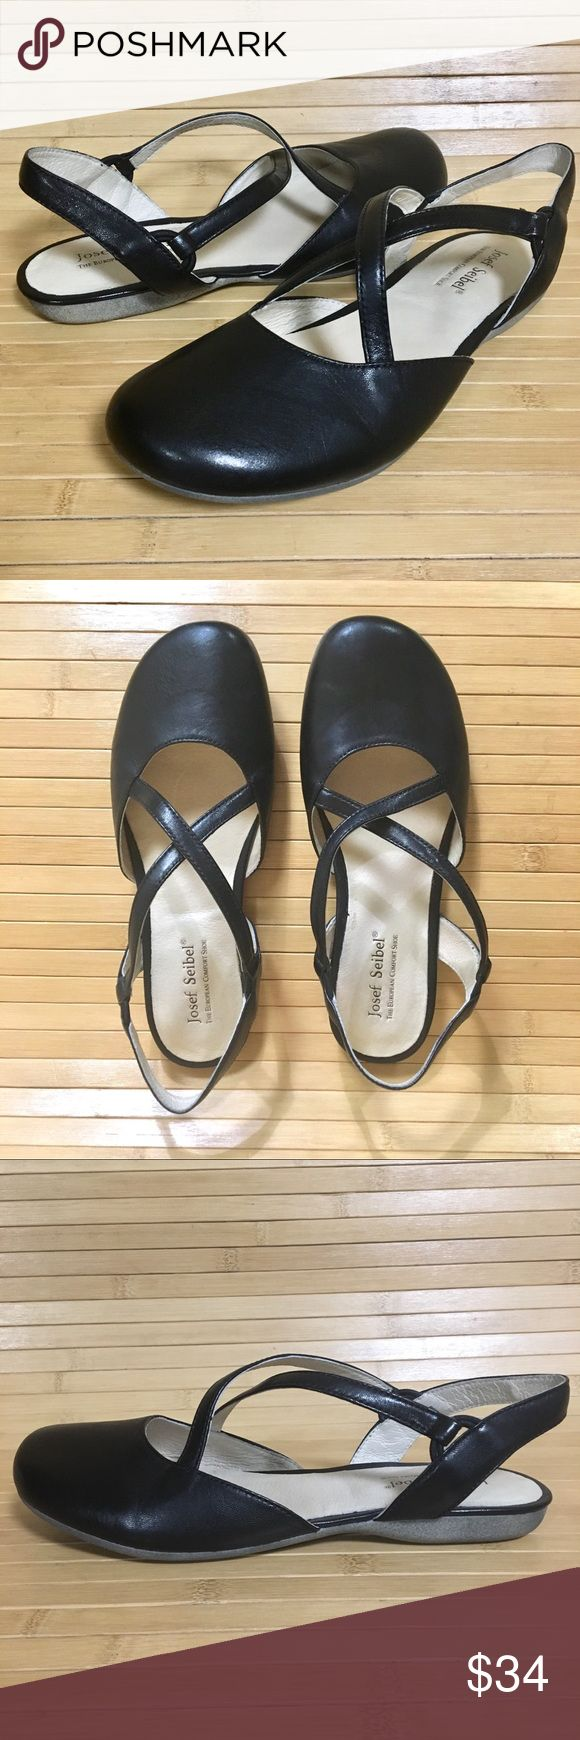 Josef Seibel 38 Ankle Strap Black Leather Josef Seibel 38 Criss Cross Ankle Strap Flats Black Leather Germany Excellent Condition Josef Seibel Shoes Flats & Loafers